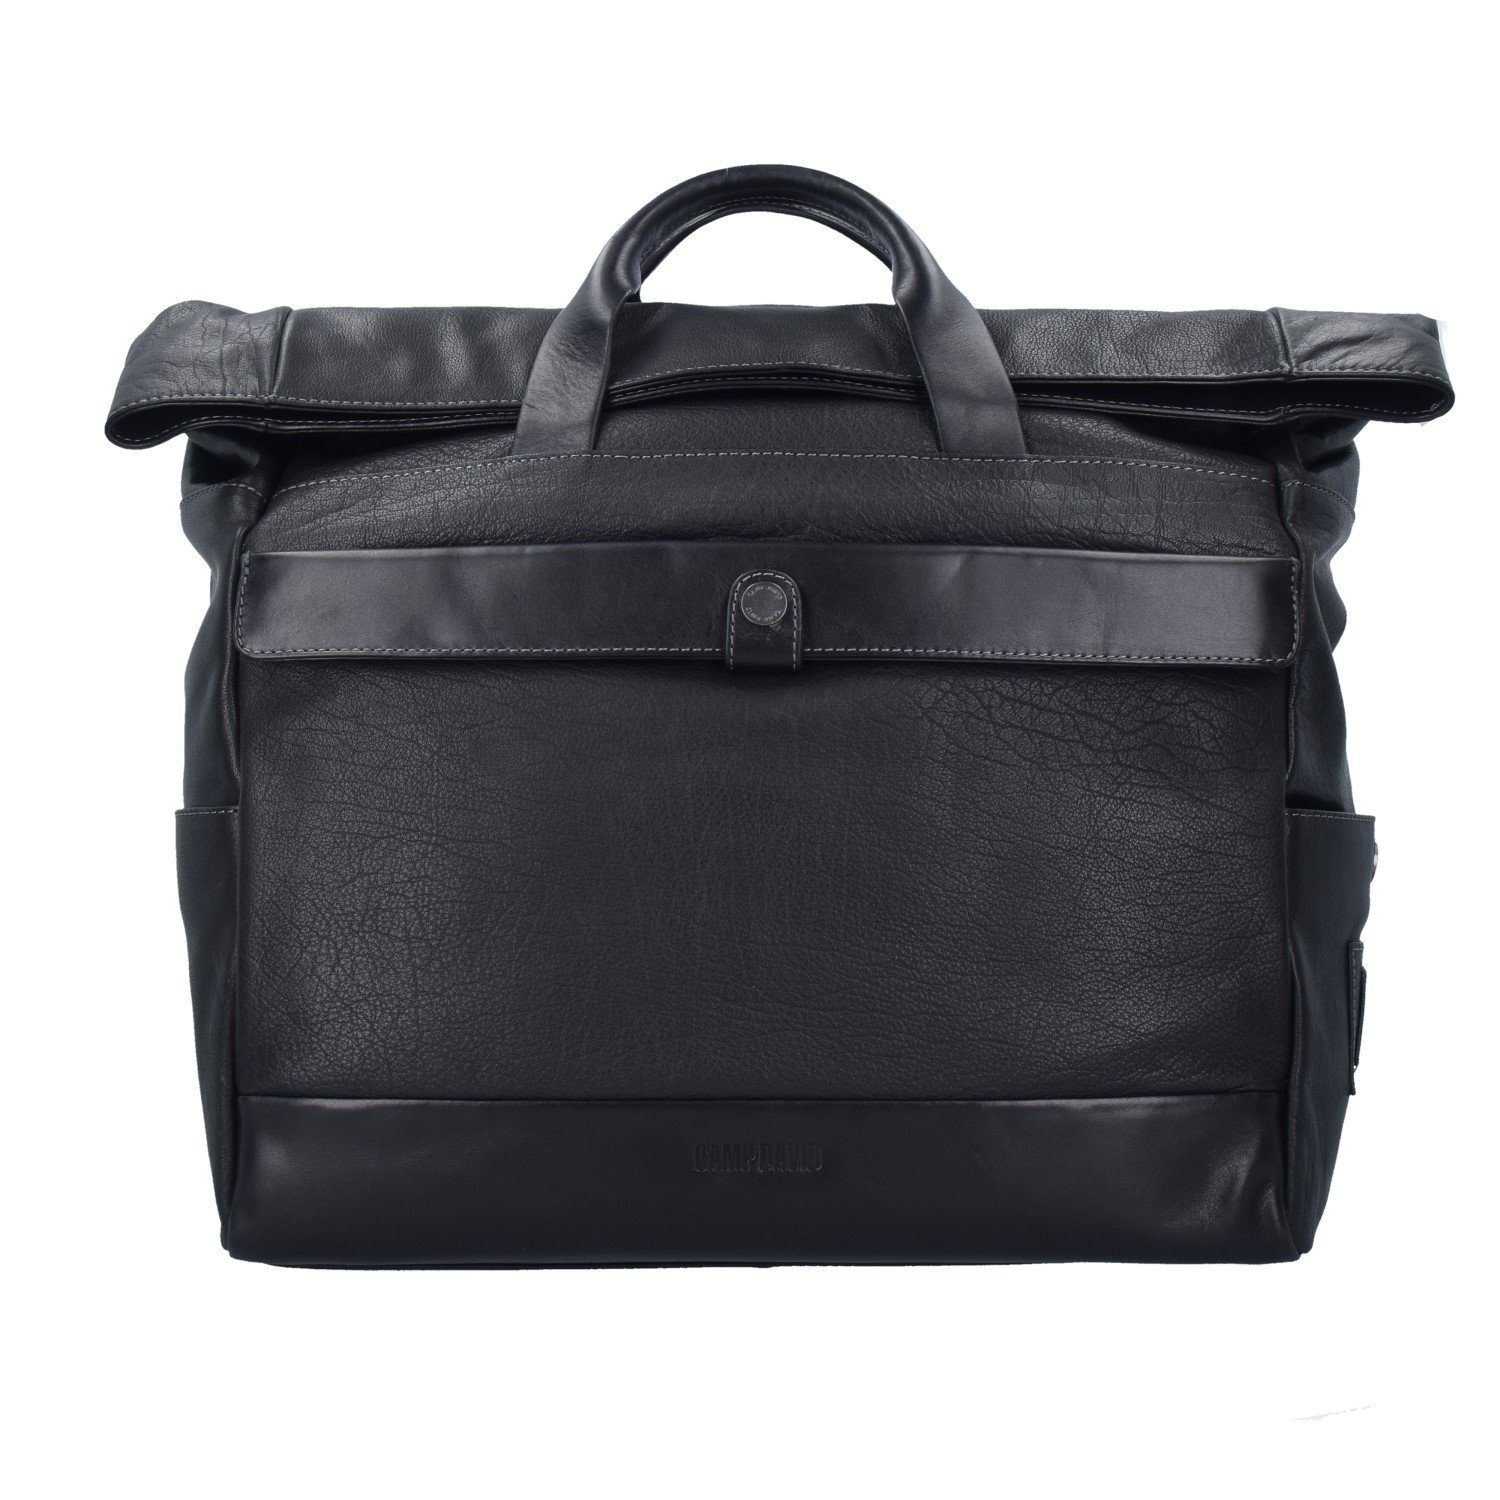 CAMP DAVID Paros Aktentasche Leder 40 cm Laptopfach